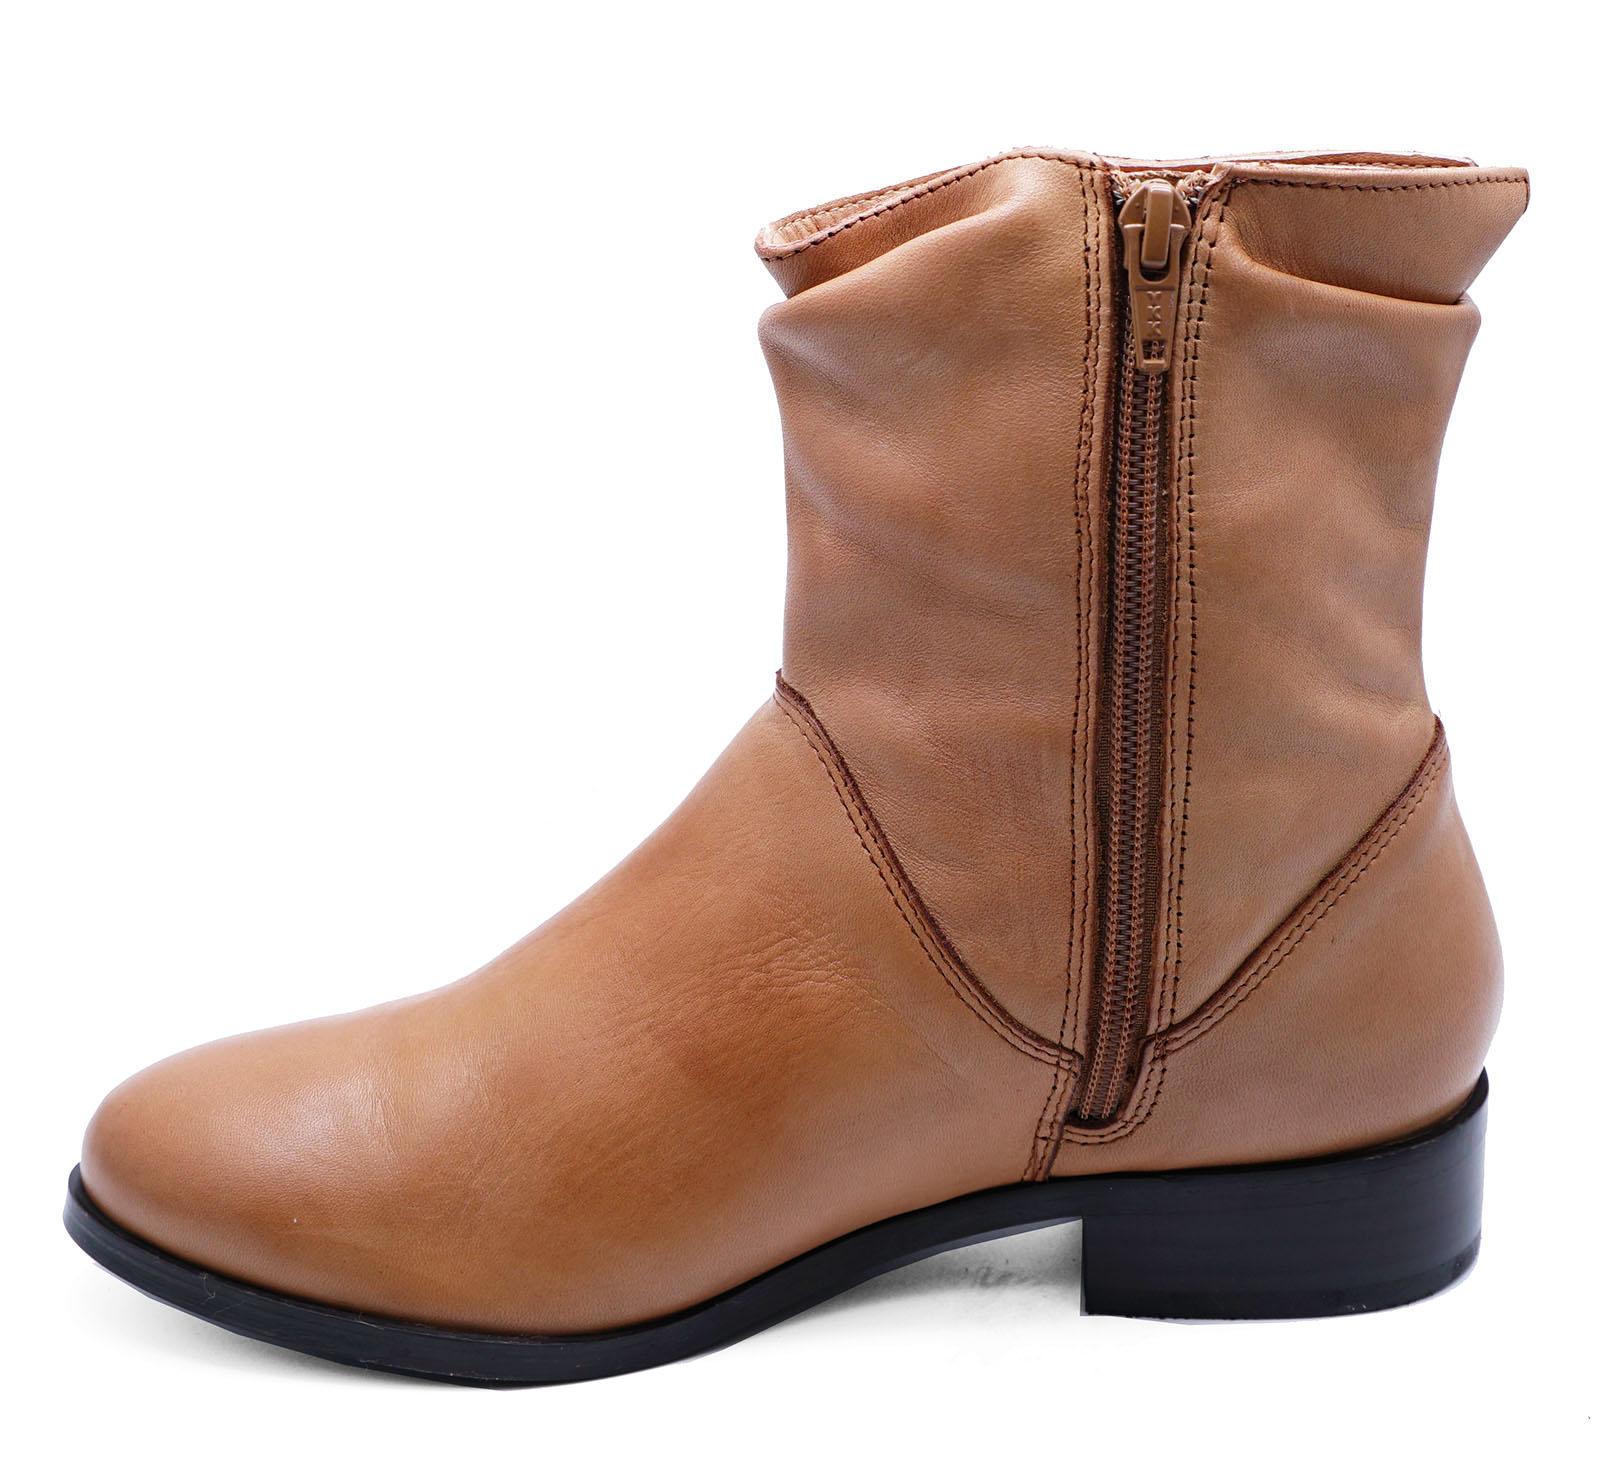 LADIES-FLAT-GENUINE-LEATHER-TAN-ZIP-UP-ANKLE-CALF-BOOTS-COMFY-SHOES-SIZES-2-9 thumbnail 18